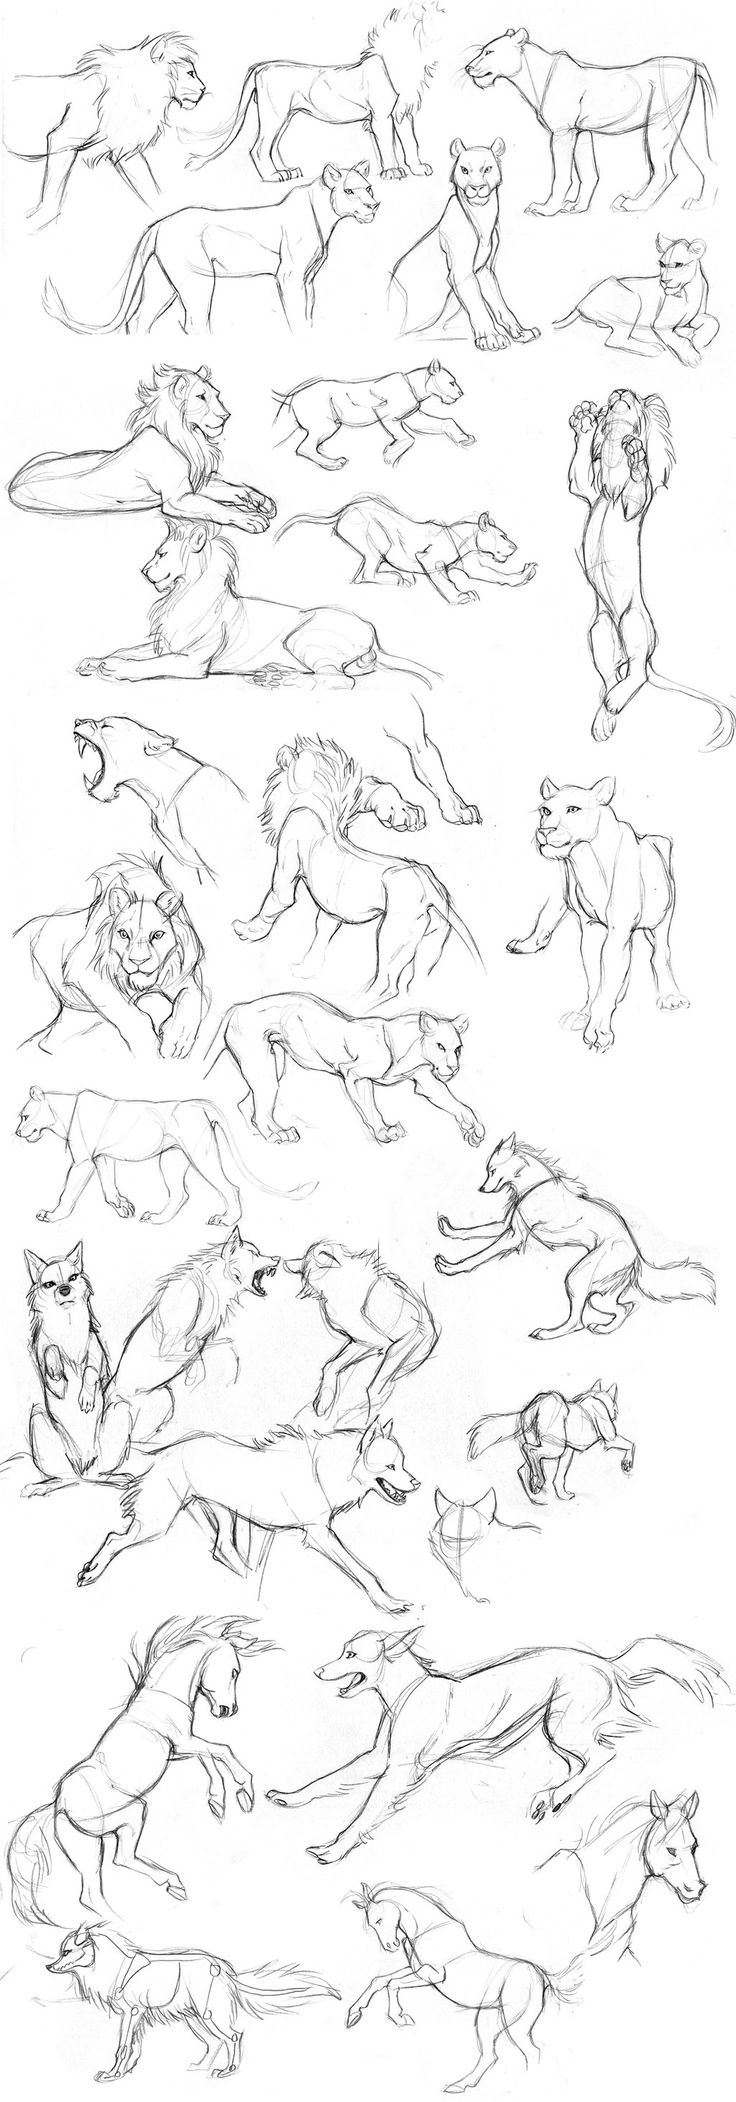 Animal sketches by Detkef on DeviantArt